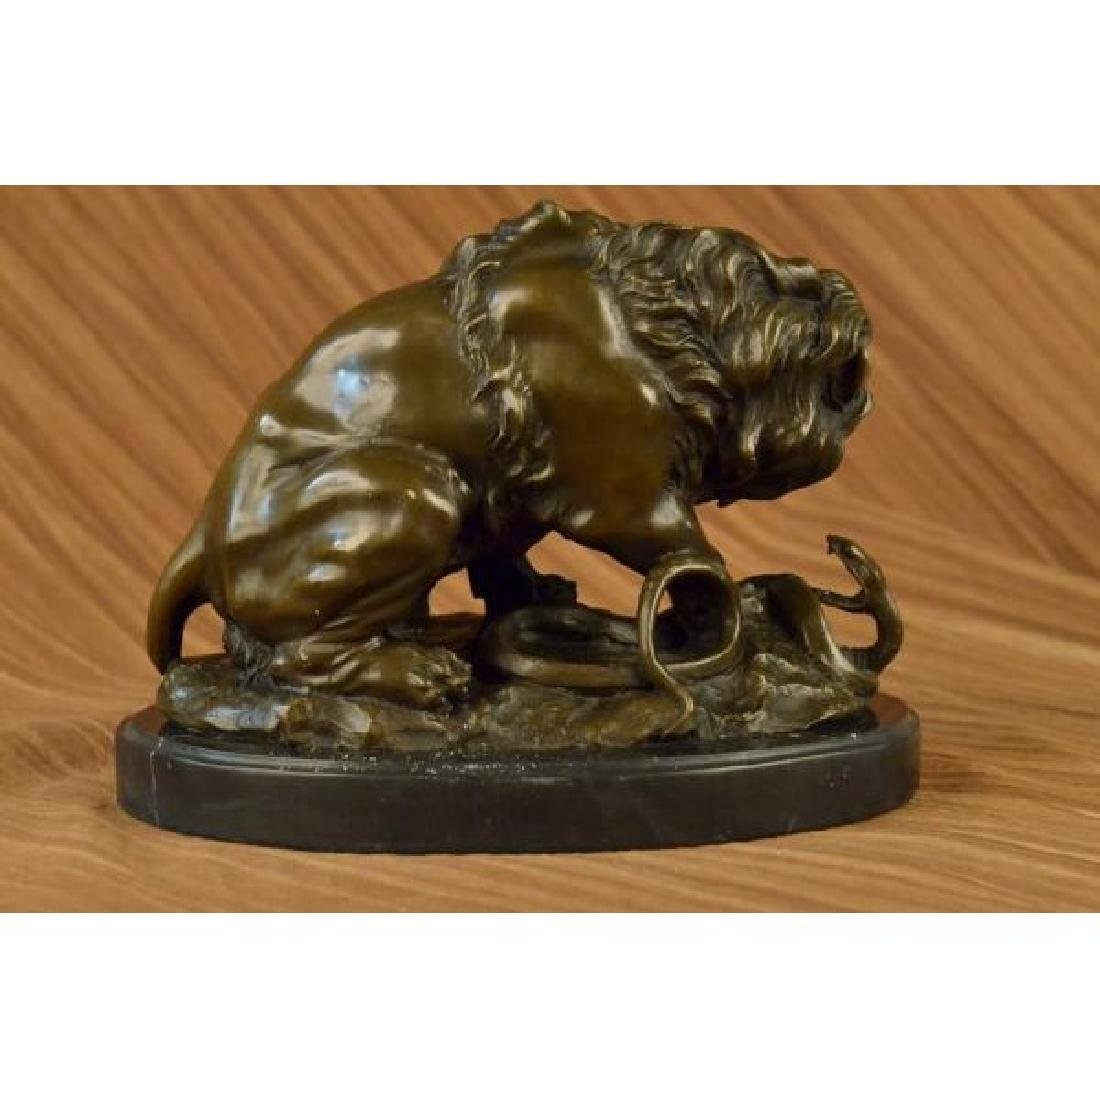 Lion and Snake Bronze Sculpture on Marble Base Statue - 3